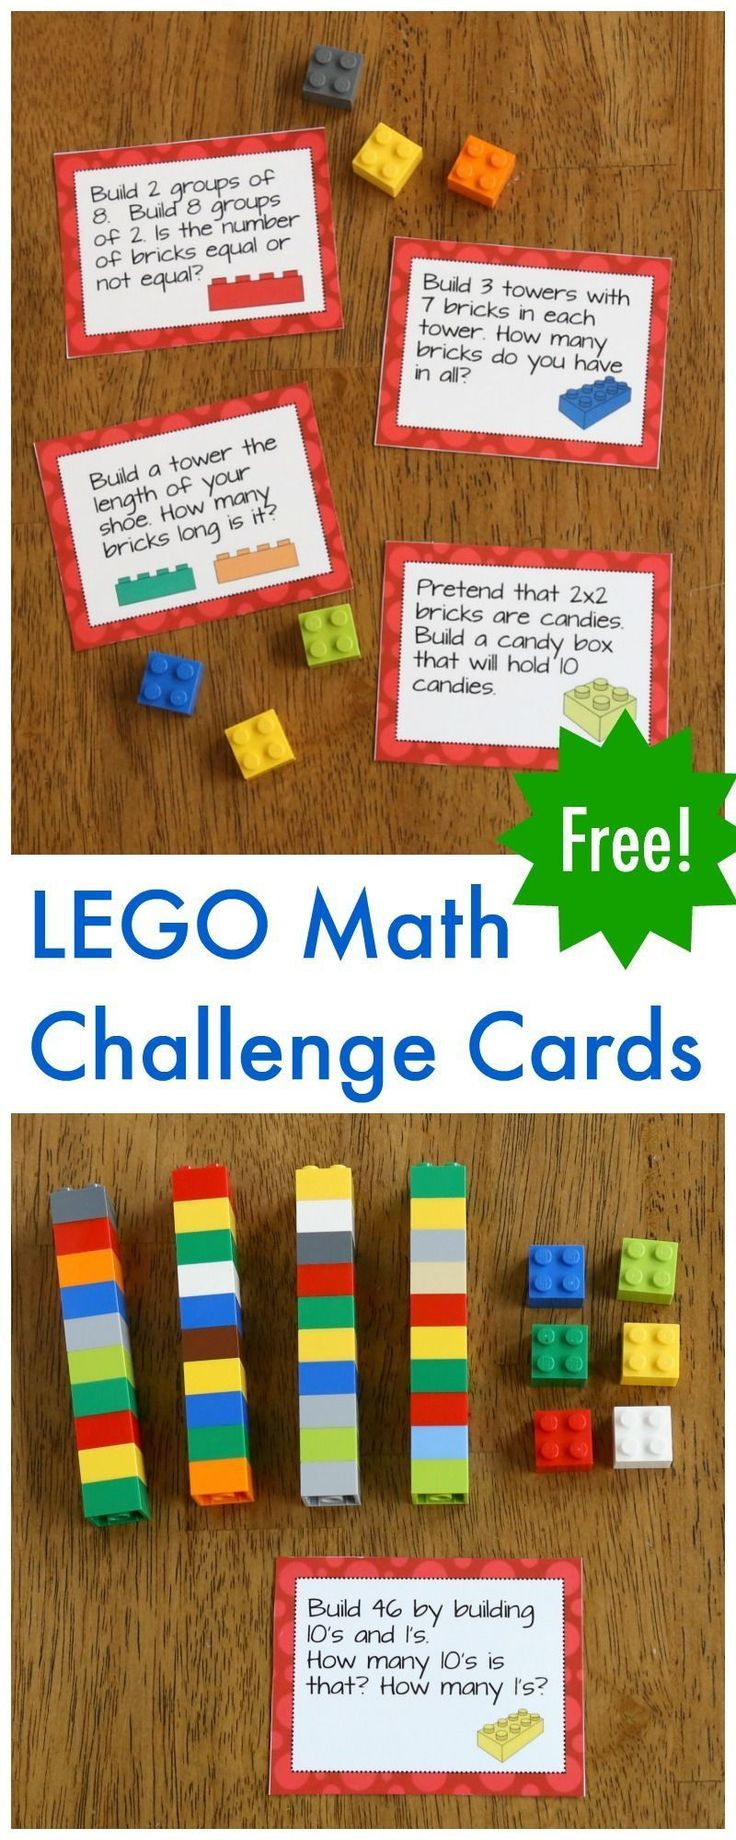 Free LEGO Math Printable Challenge Cards! Fun way to work on math facts in first or second grade. This would be a fun STEM center too! #lego #math #firstgrade #secondgrade #learnmathfacts #mathpracticeonline #mathteacher